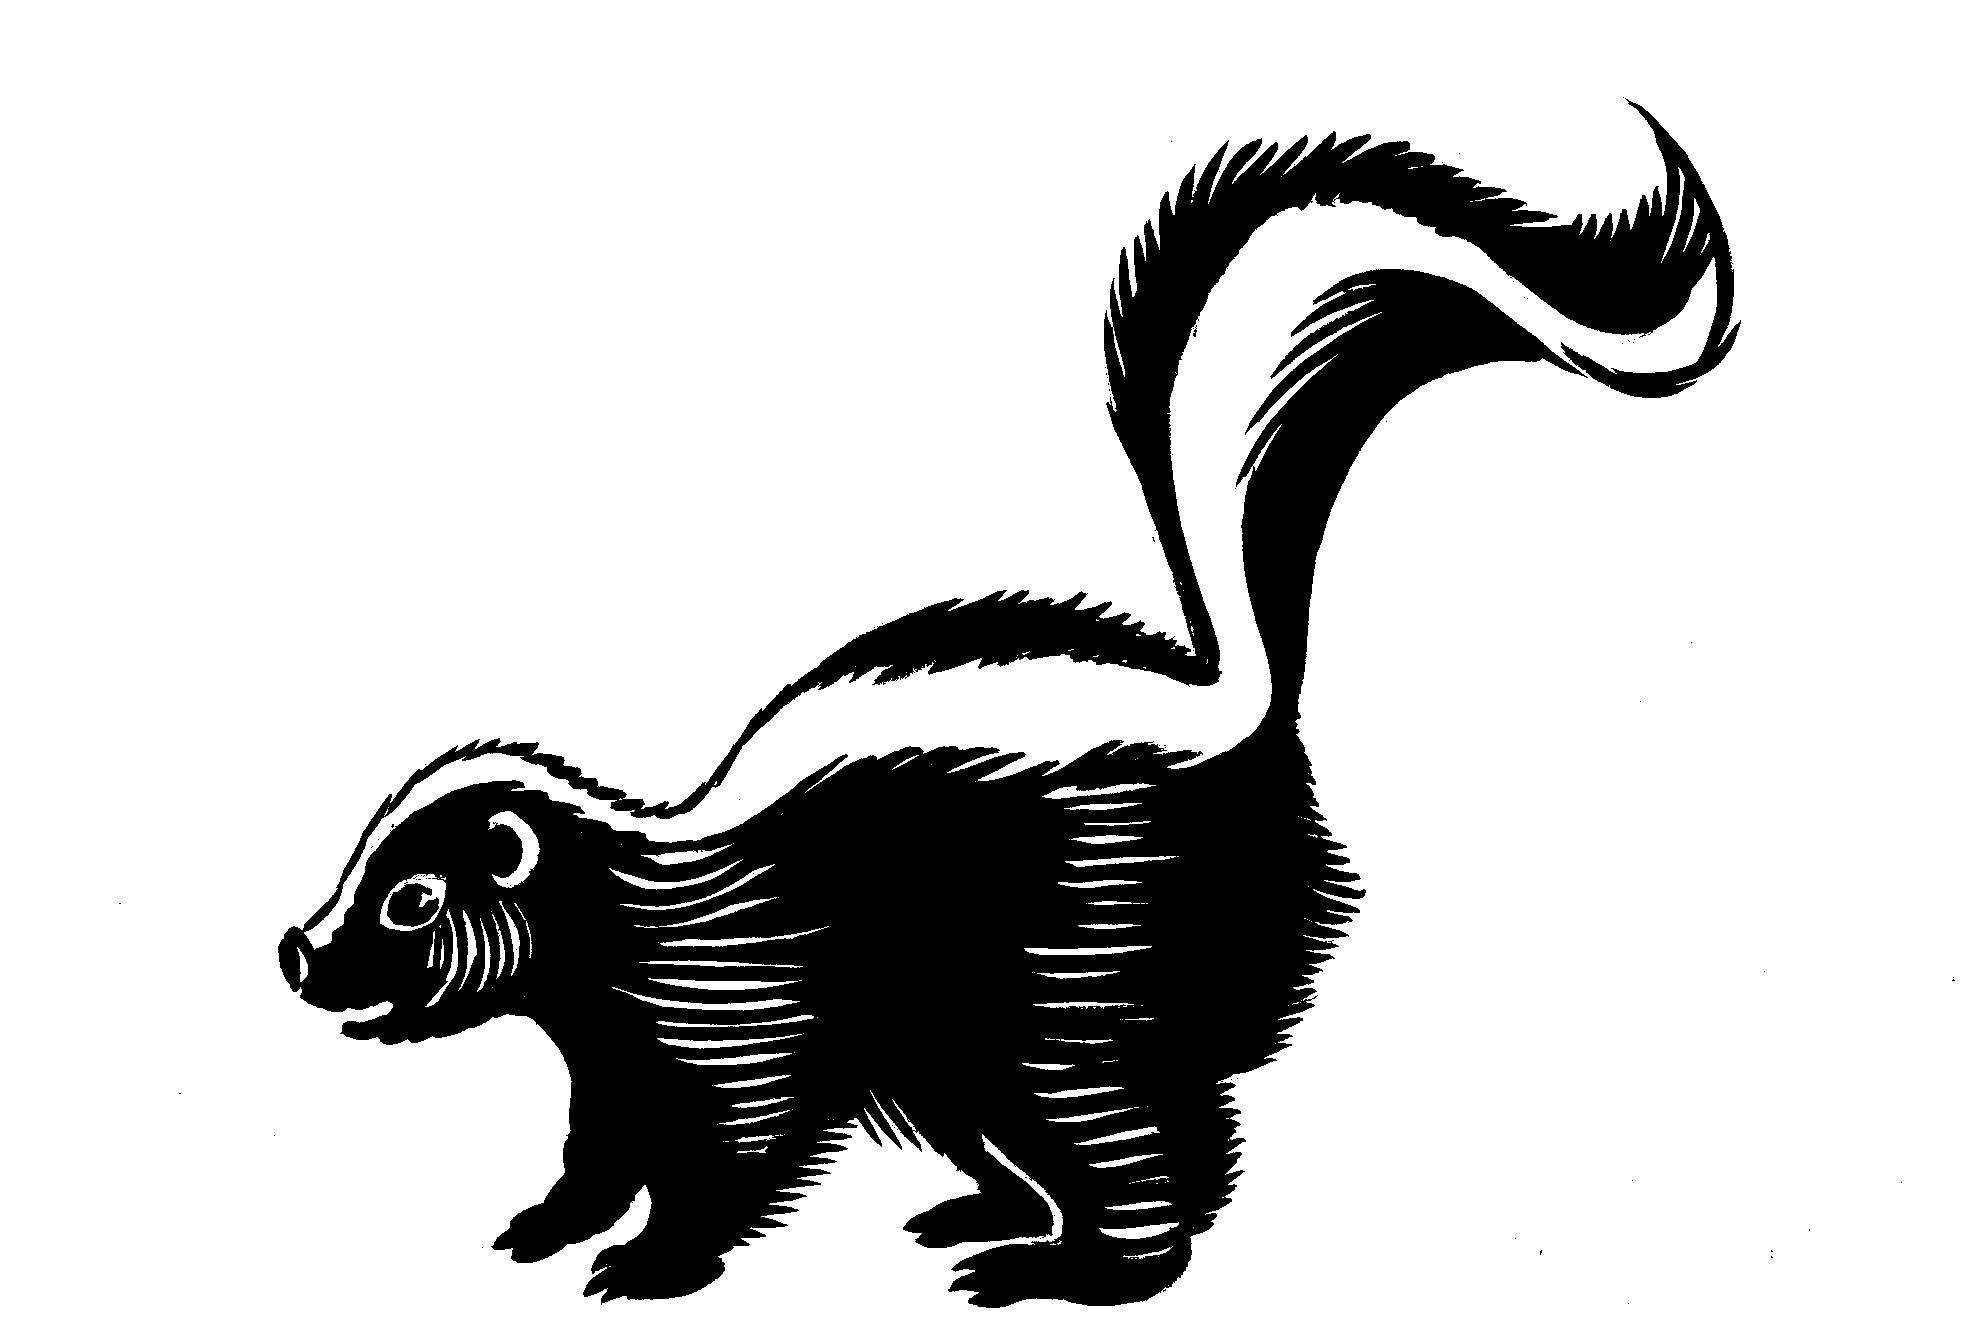 Cute valentine skunk clipart black and white clipart library download Cute valentine skunk clipart black and white - ClipartFest clipart library download